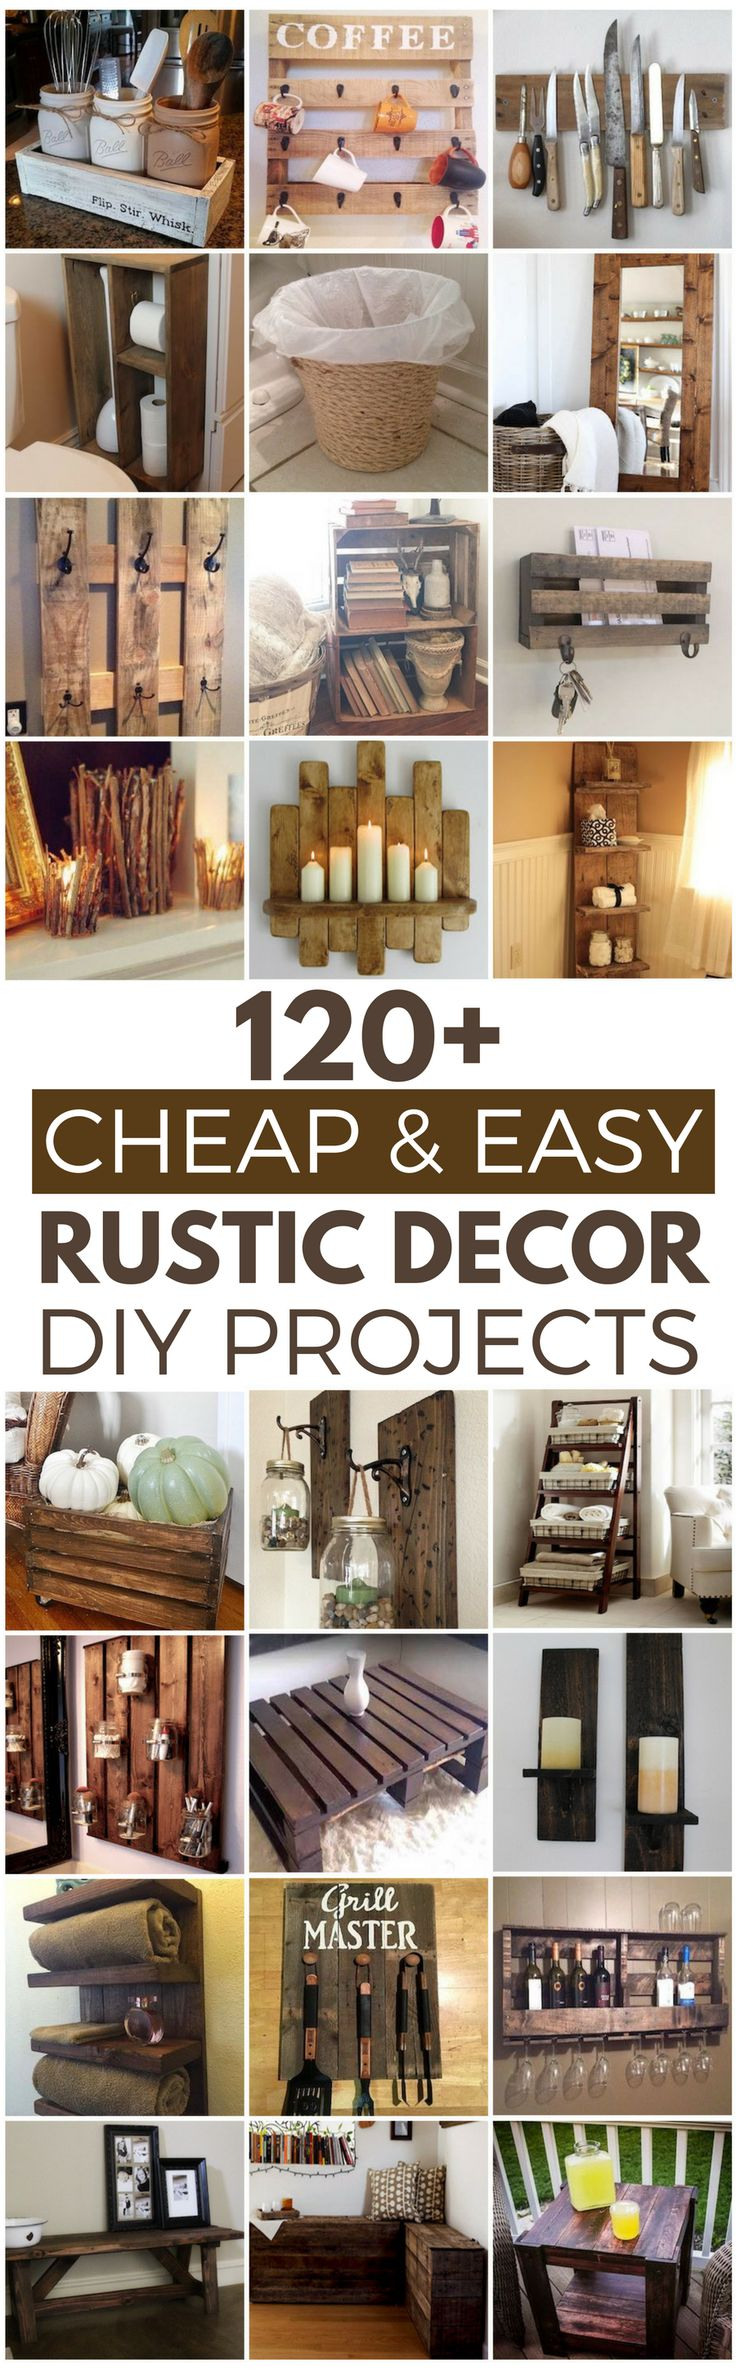 120 cheap and easy rustic diy home decor ideas - Ideas For Home Decorations